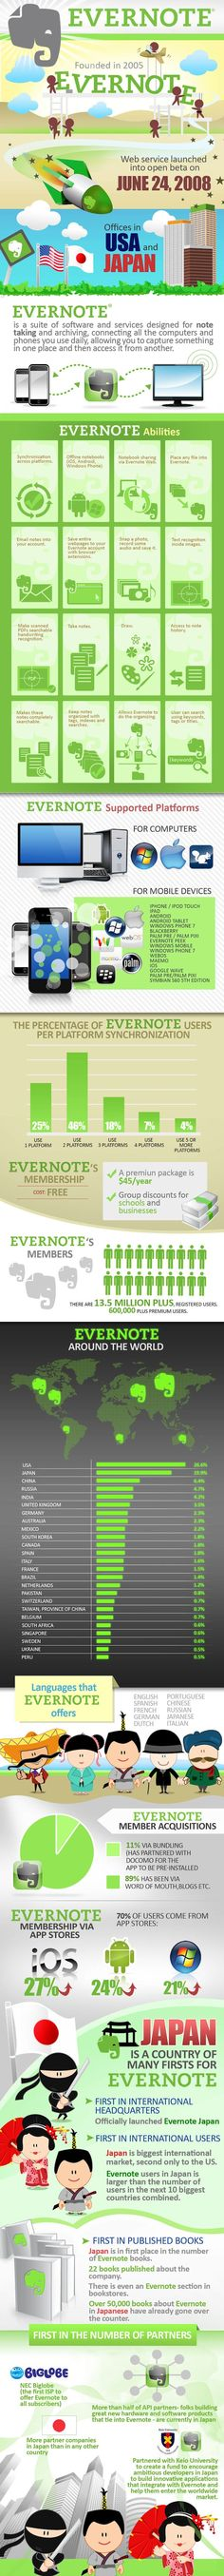 """All About Evernote.....wow-I had no idea it's been around as long as it has!  That's one of the reasons I chose it-it has a good history, has had a chance to work out any """"bugs"""" in the program and is likely to last =)"""